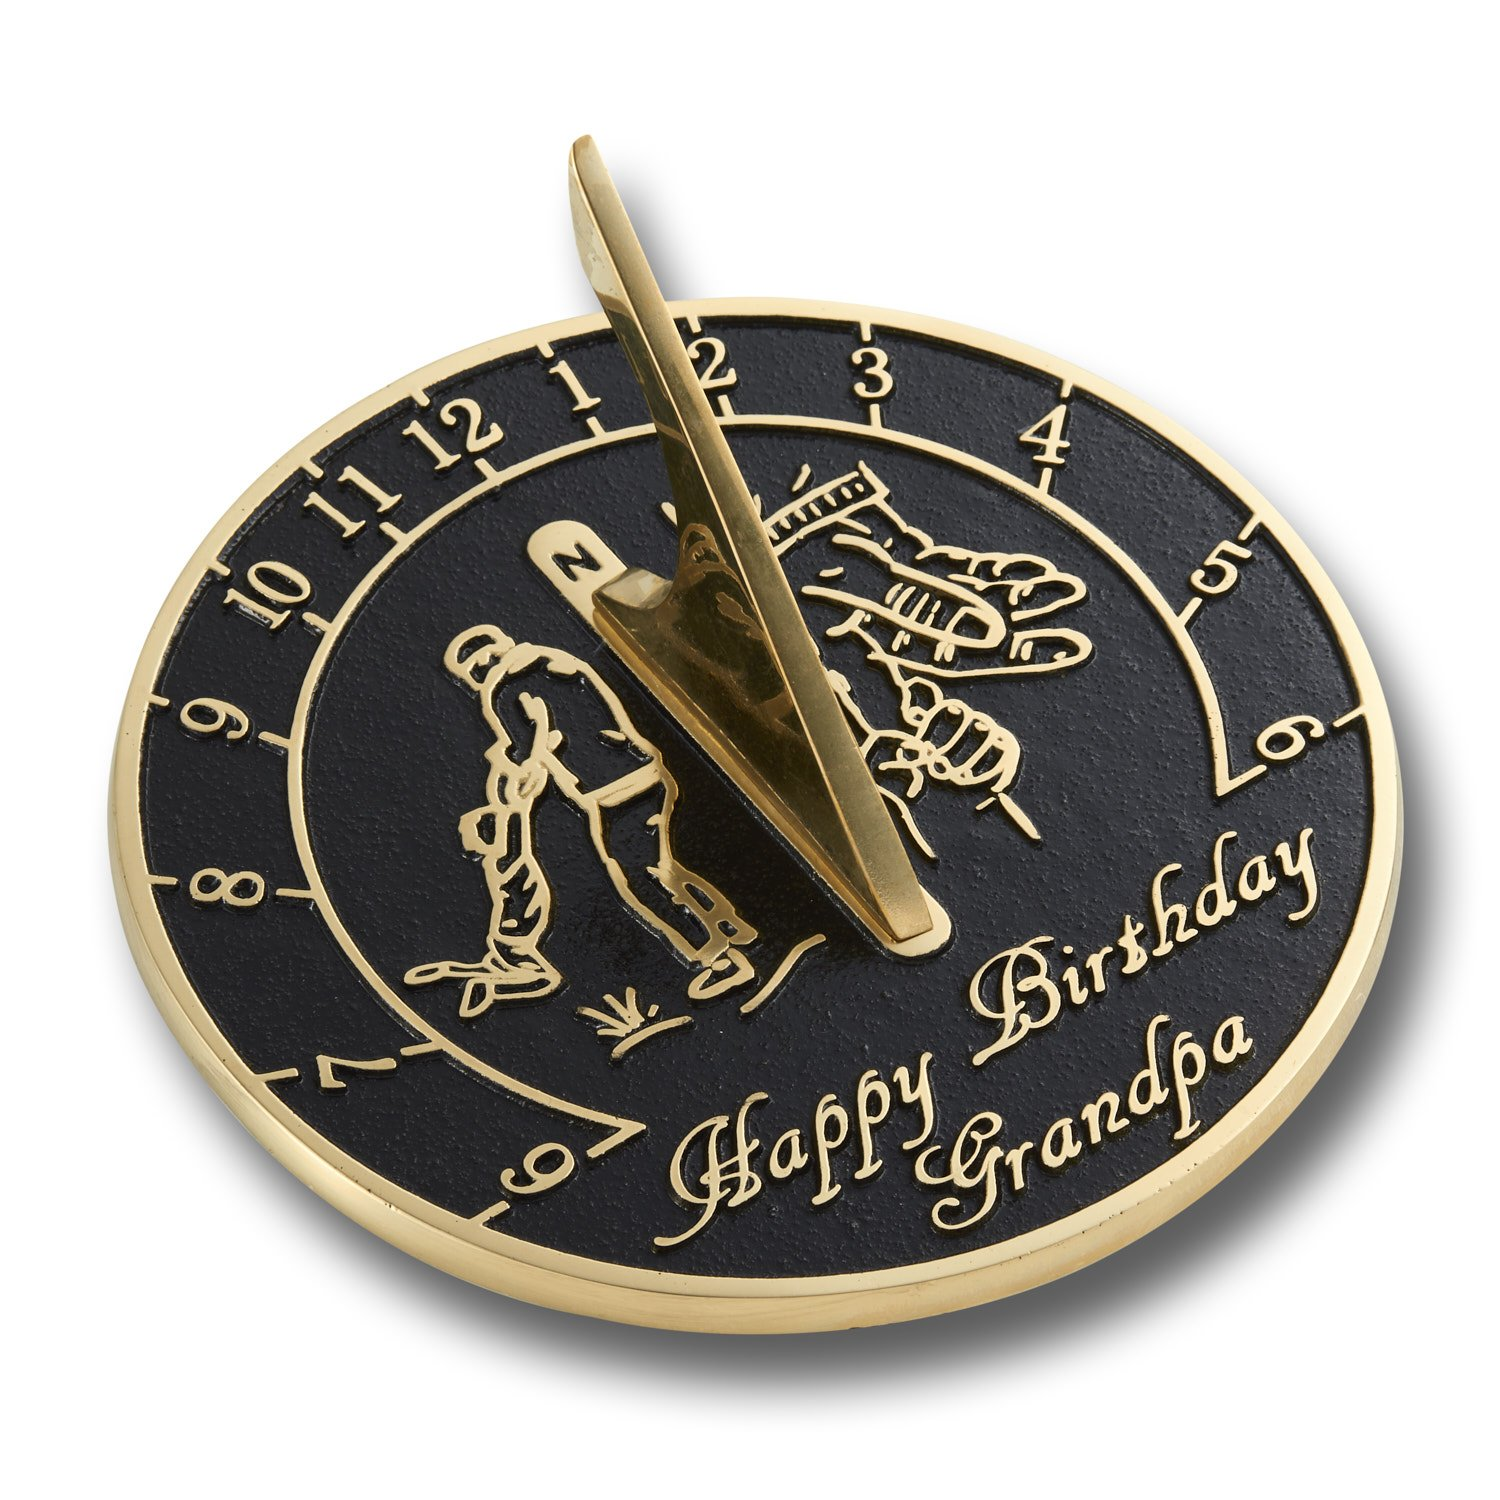 The Metal Foundry Happy Birthday Grandpa Sundial Gift. Looking For The Best Present Idea For A Special Grandpa For His Birthday? Great For His Garden Or Home.